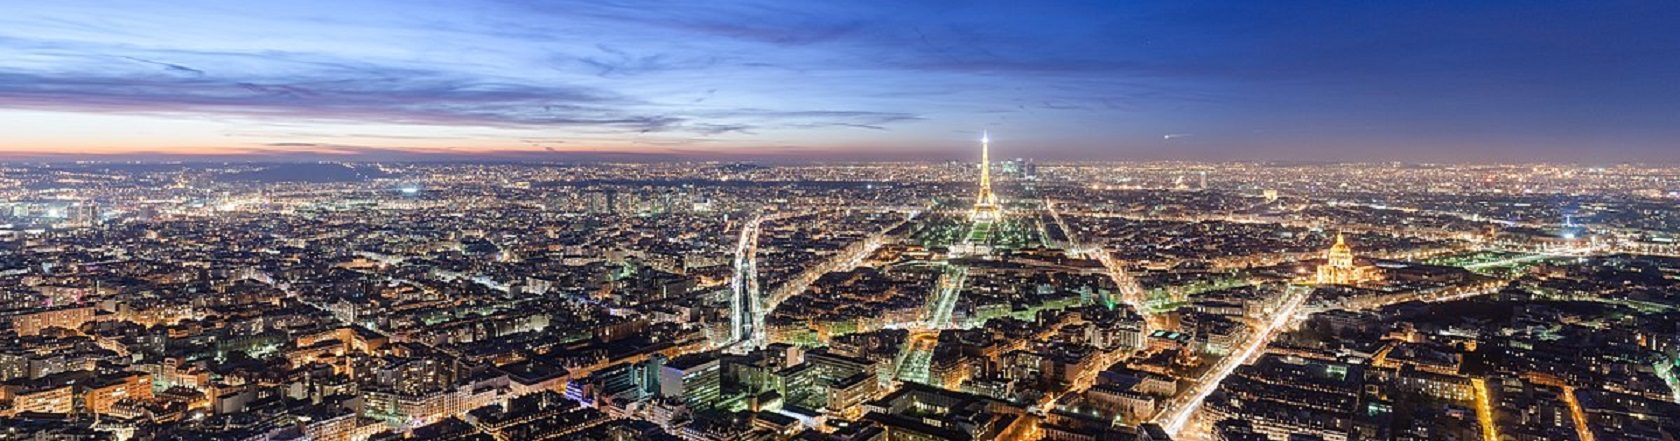 Nightime overhead image of Paris.